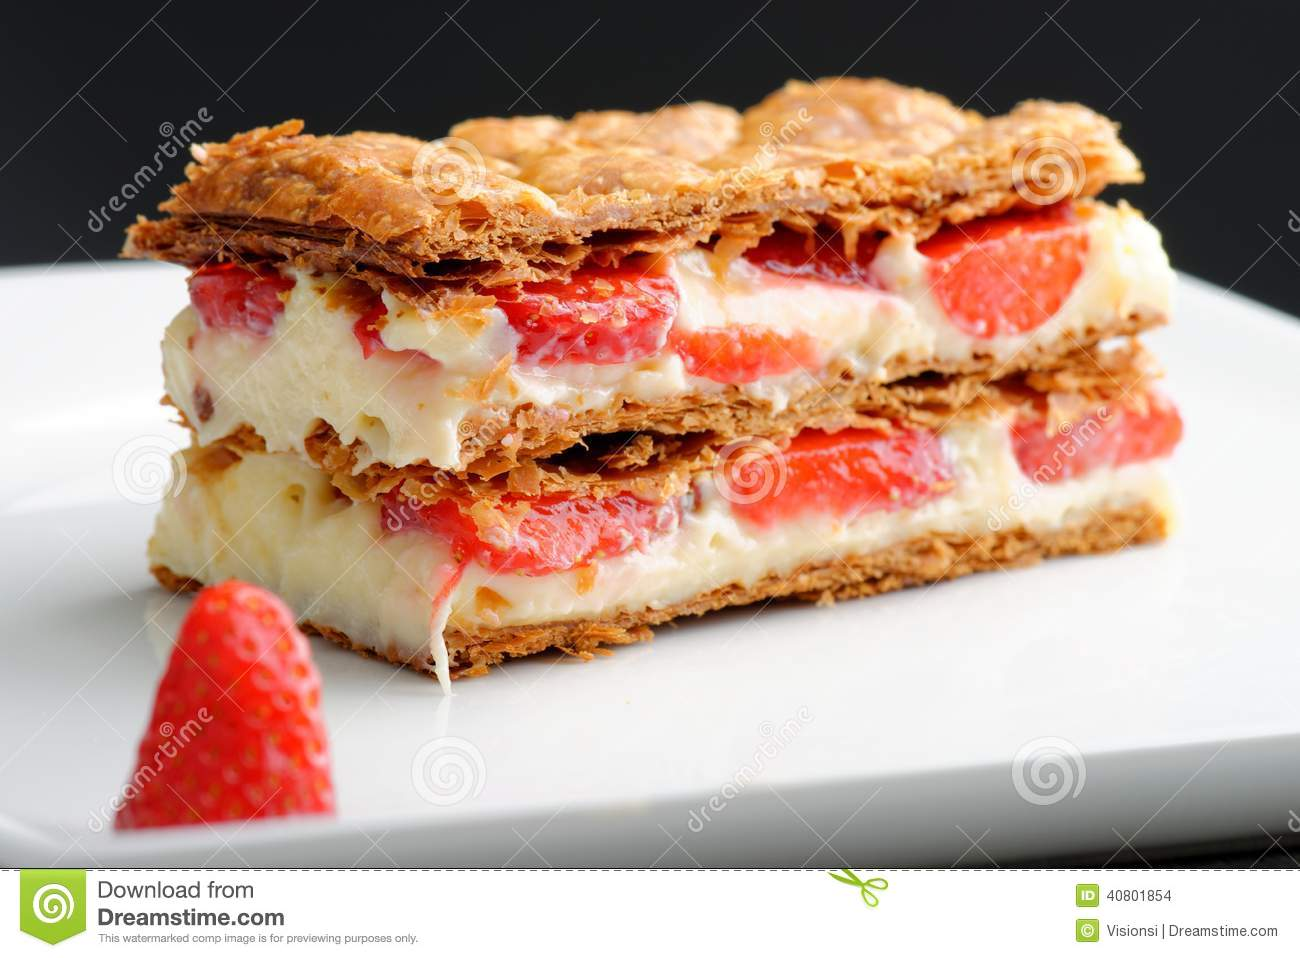 Download French Gourmet Strawberry Mille Feuille Stock Photo - Image of fresh, blueberries: 40801854